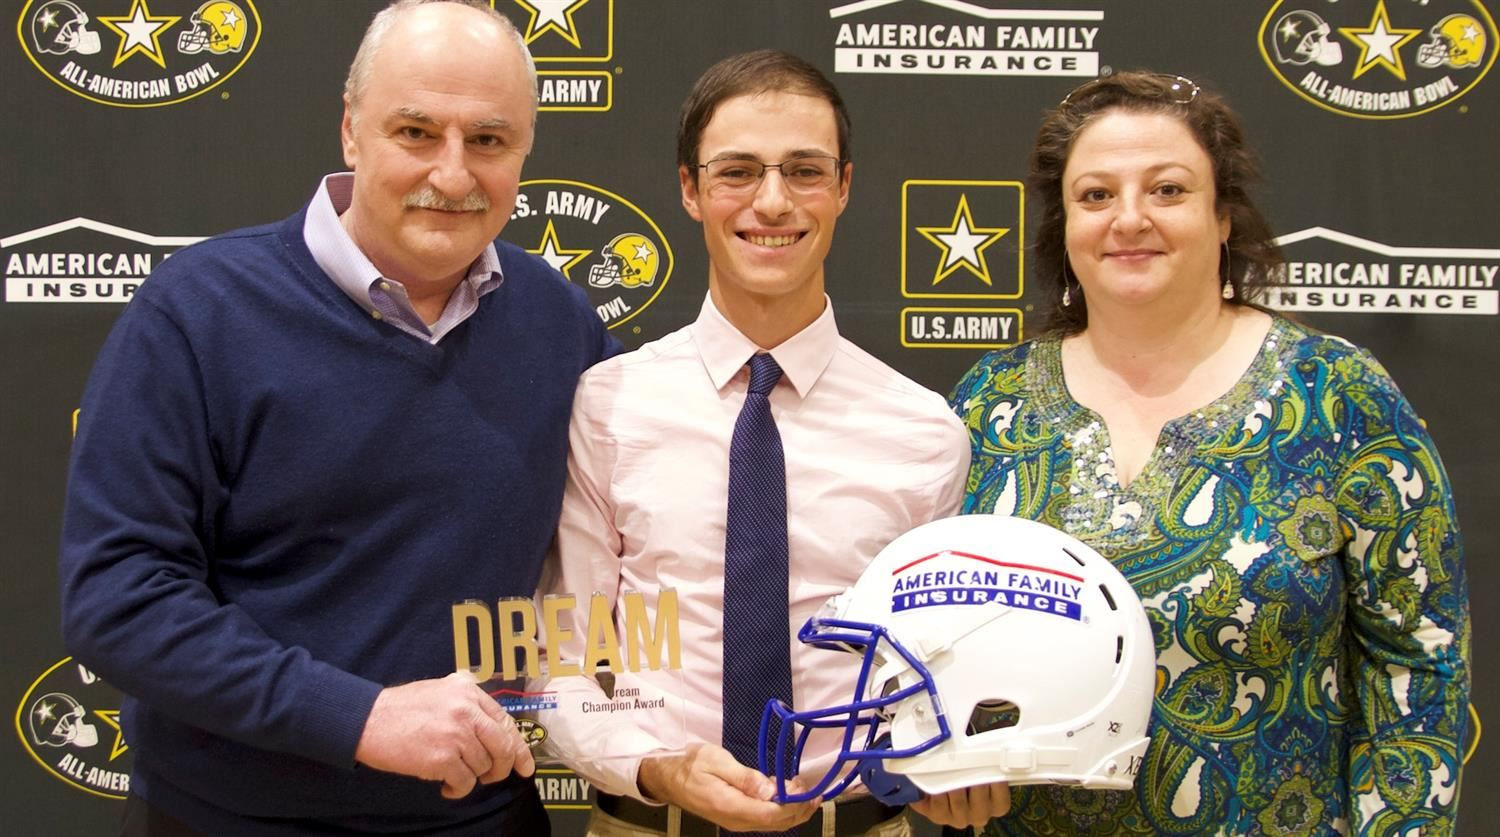 Samer issa of Green Hope High School with parents receiving All-American marching band honors.